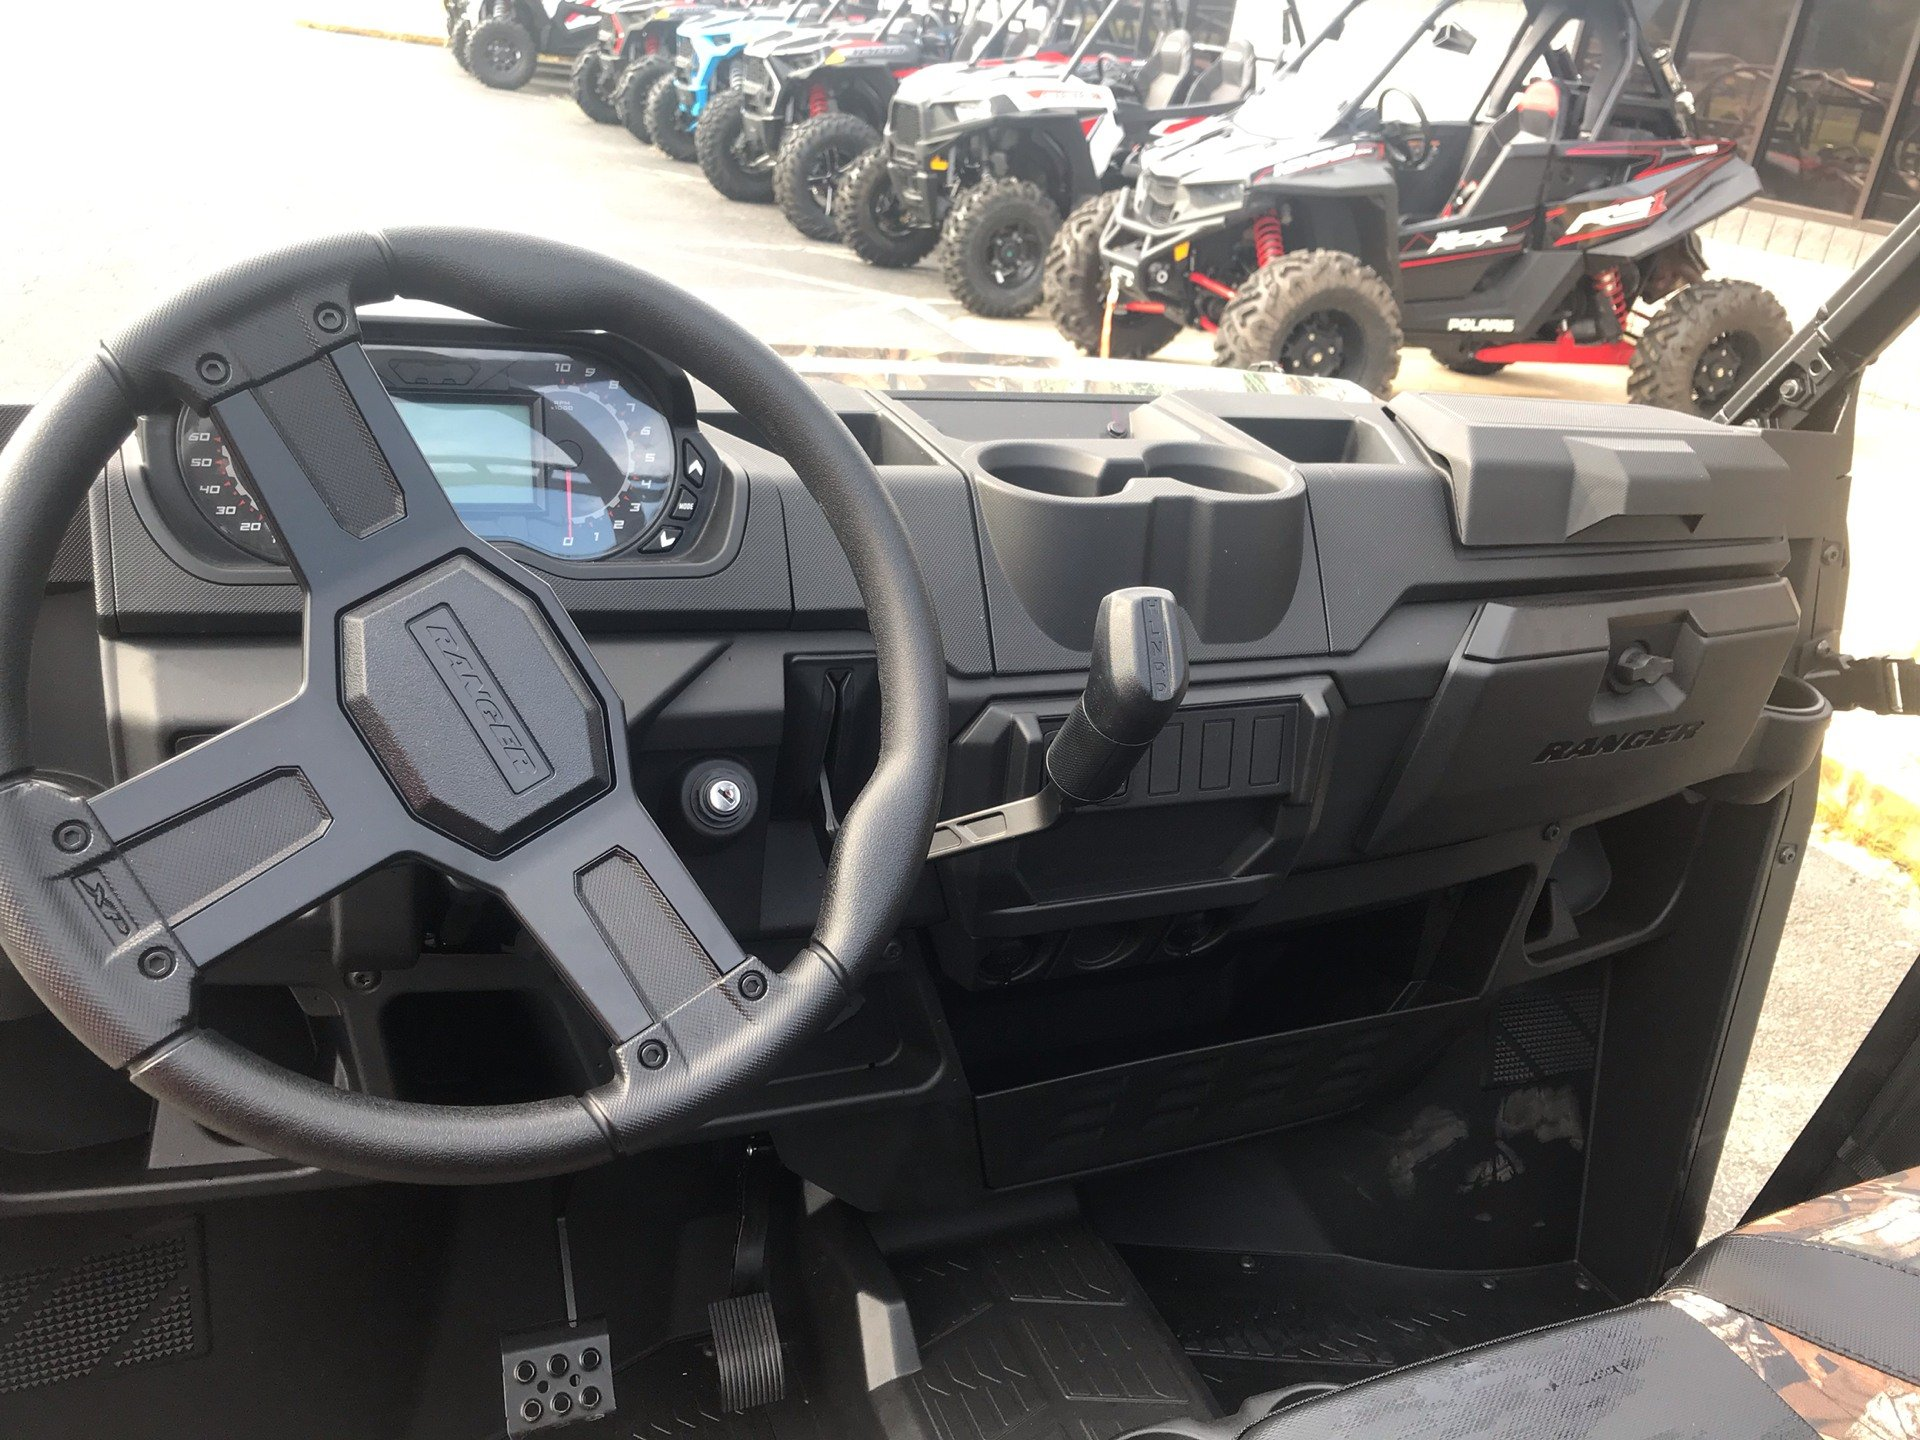 2020 Polaris Ranger Crew XP 1000 Premium in Lancaster, South Carolina - Photo 7